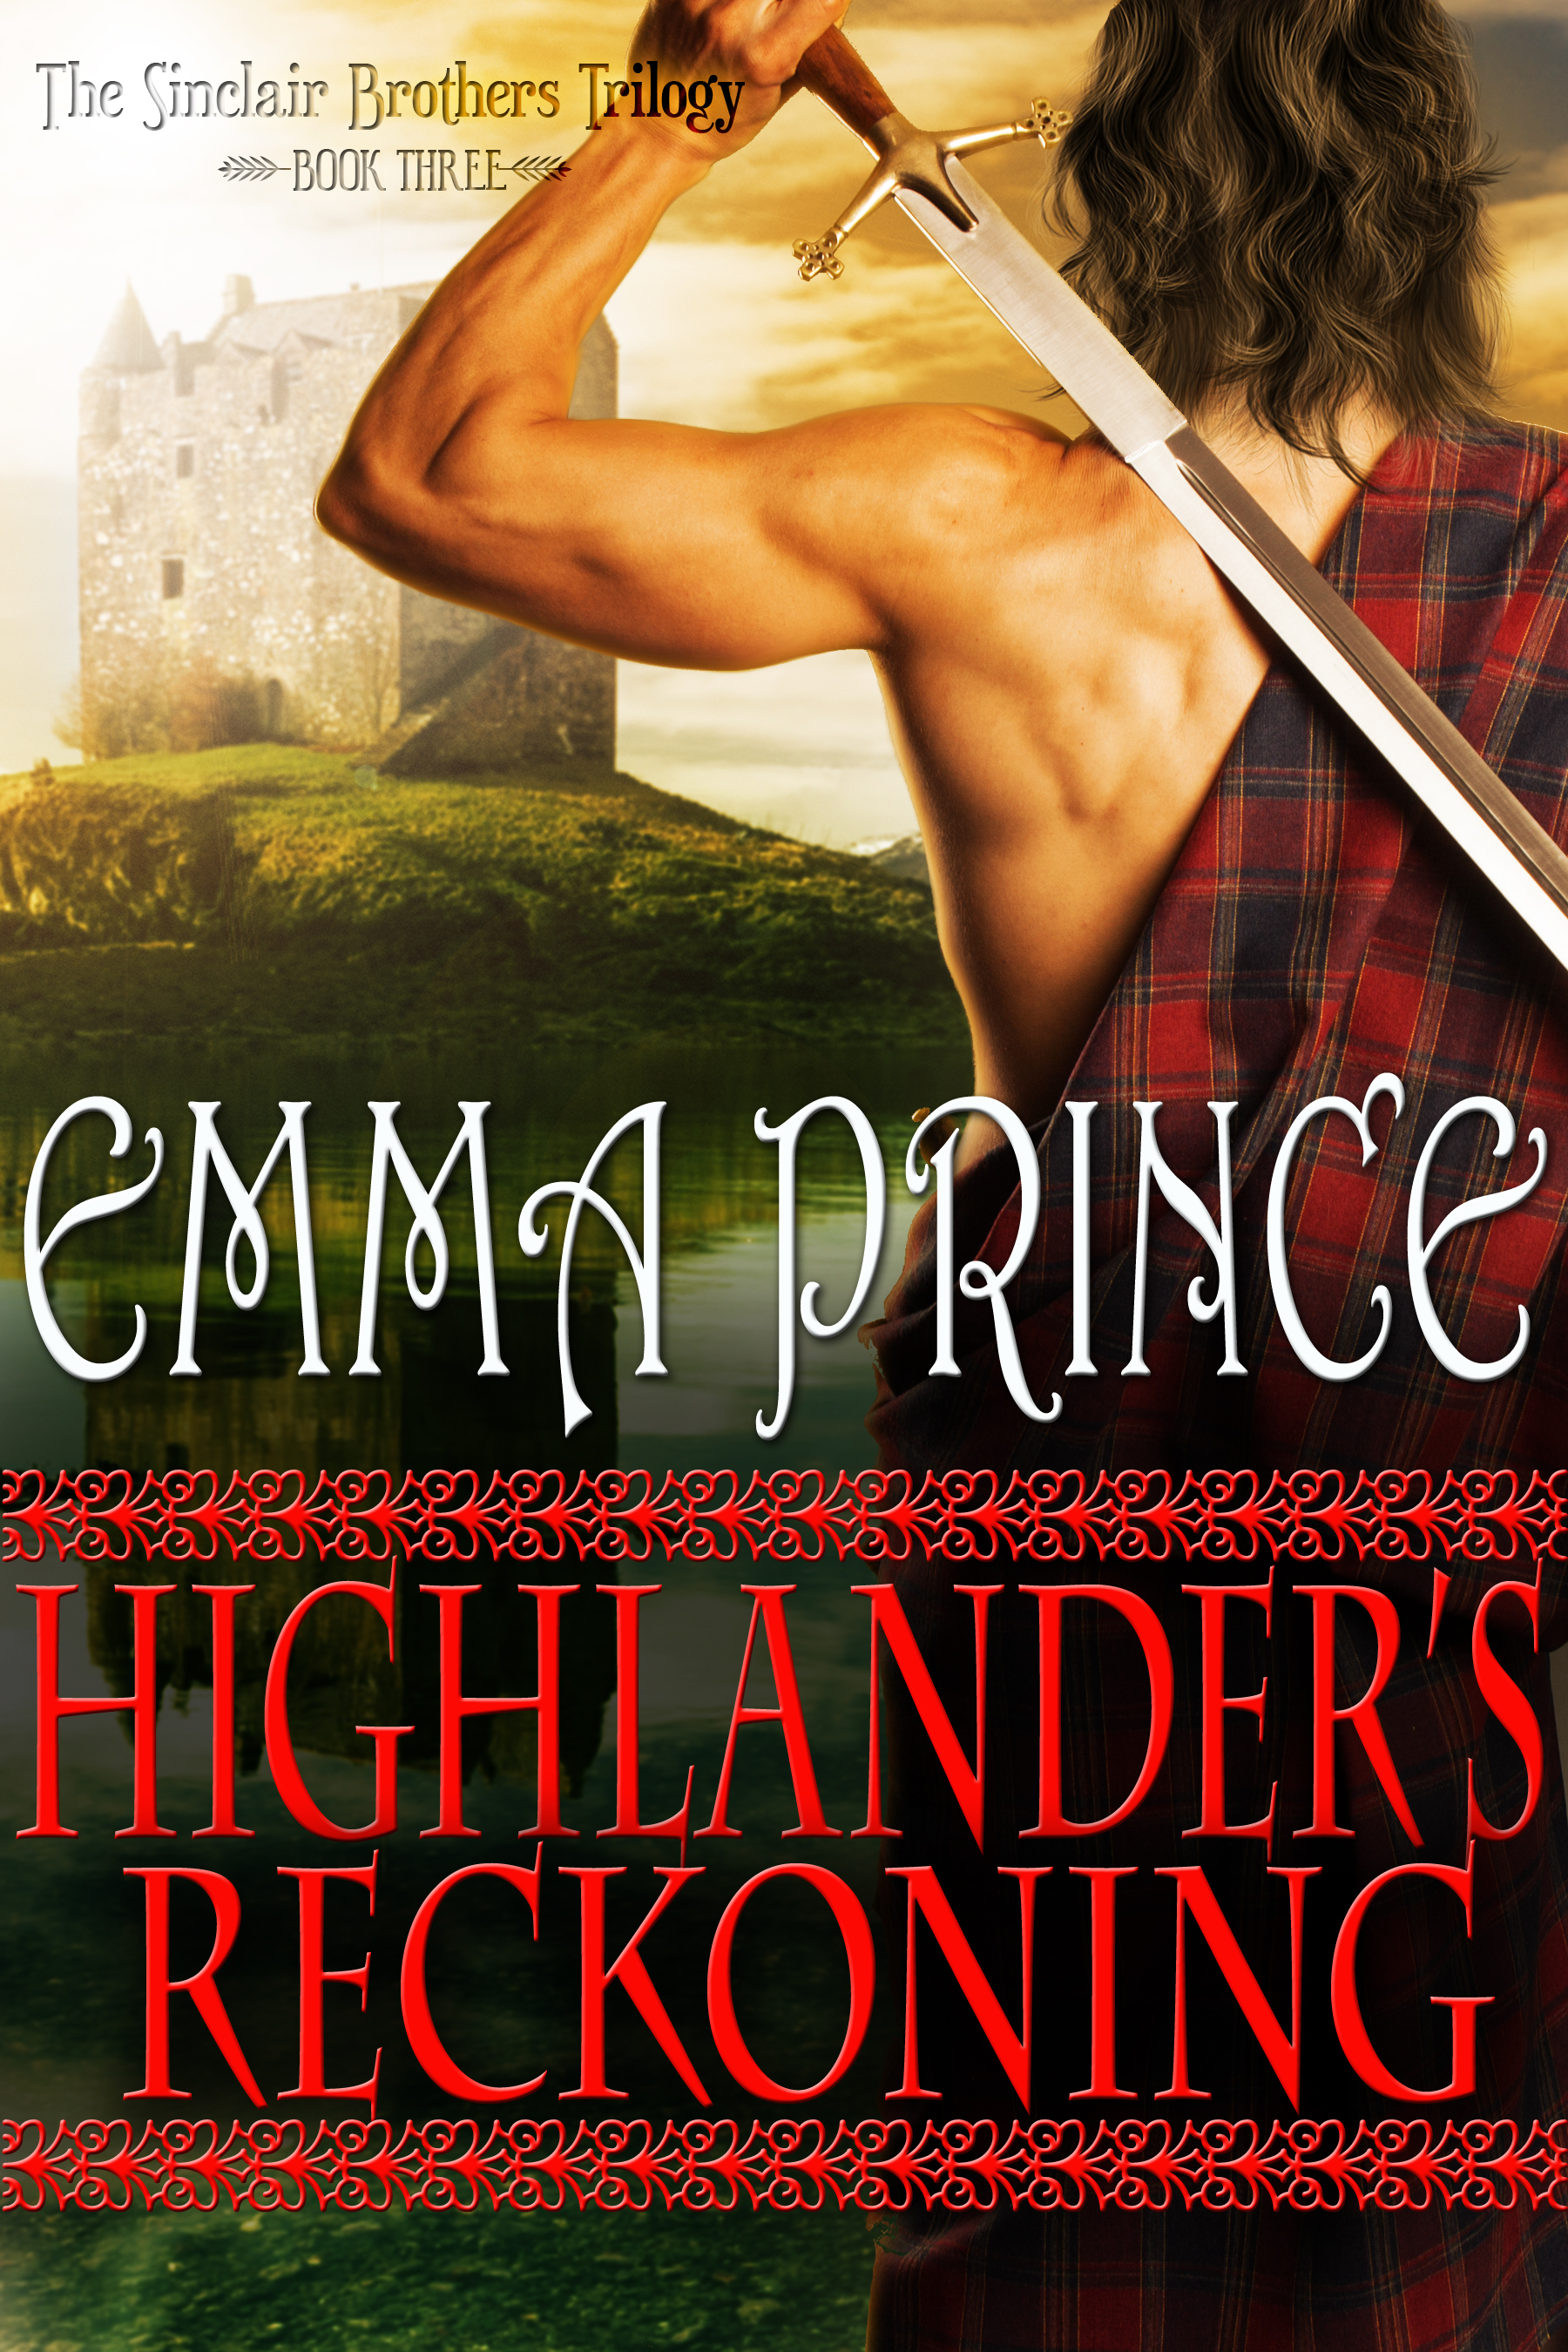 Highlander's Reckoning (Book 3)